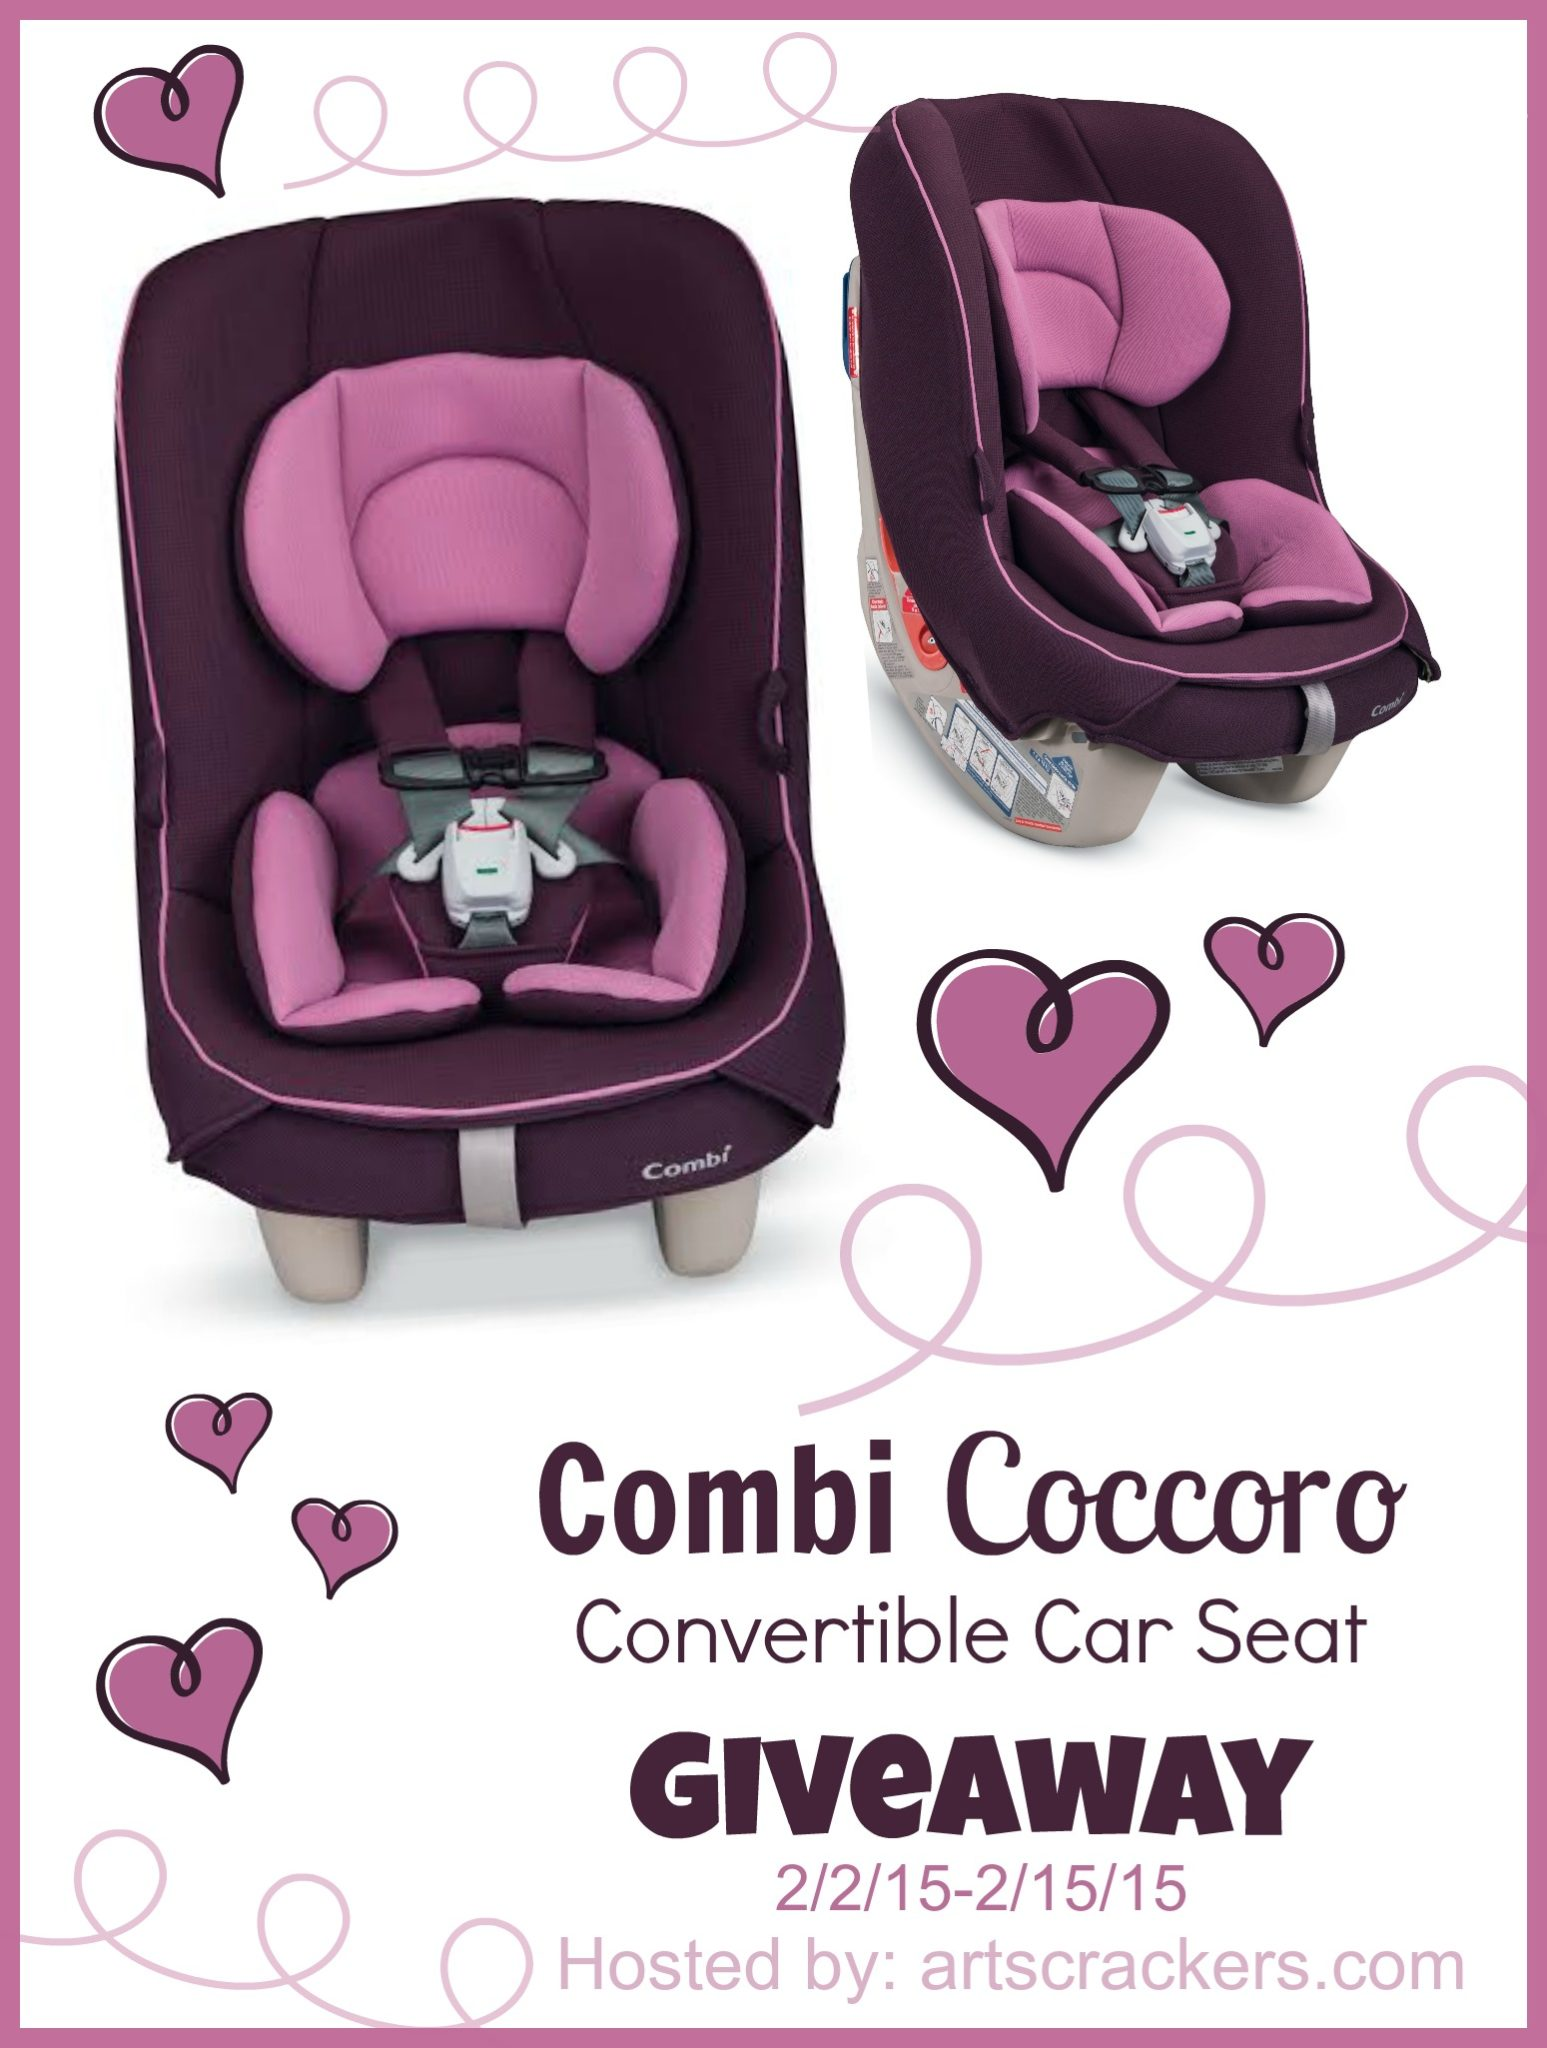 combi coccoro convertible car seat giveaway arts crackers. Black Bedroom Furniture Sets. Home Design Ideas